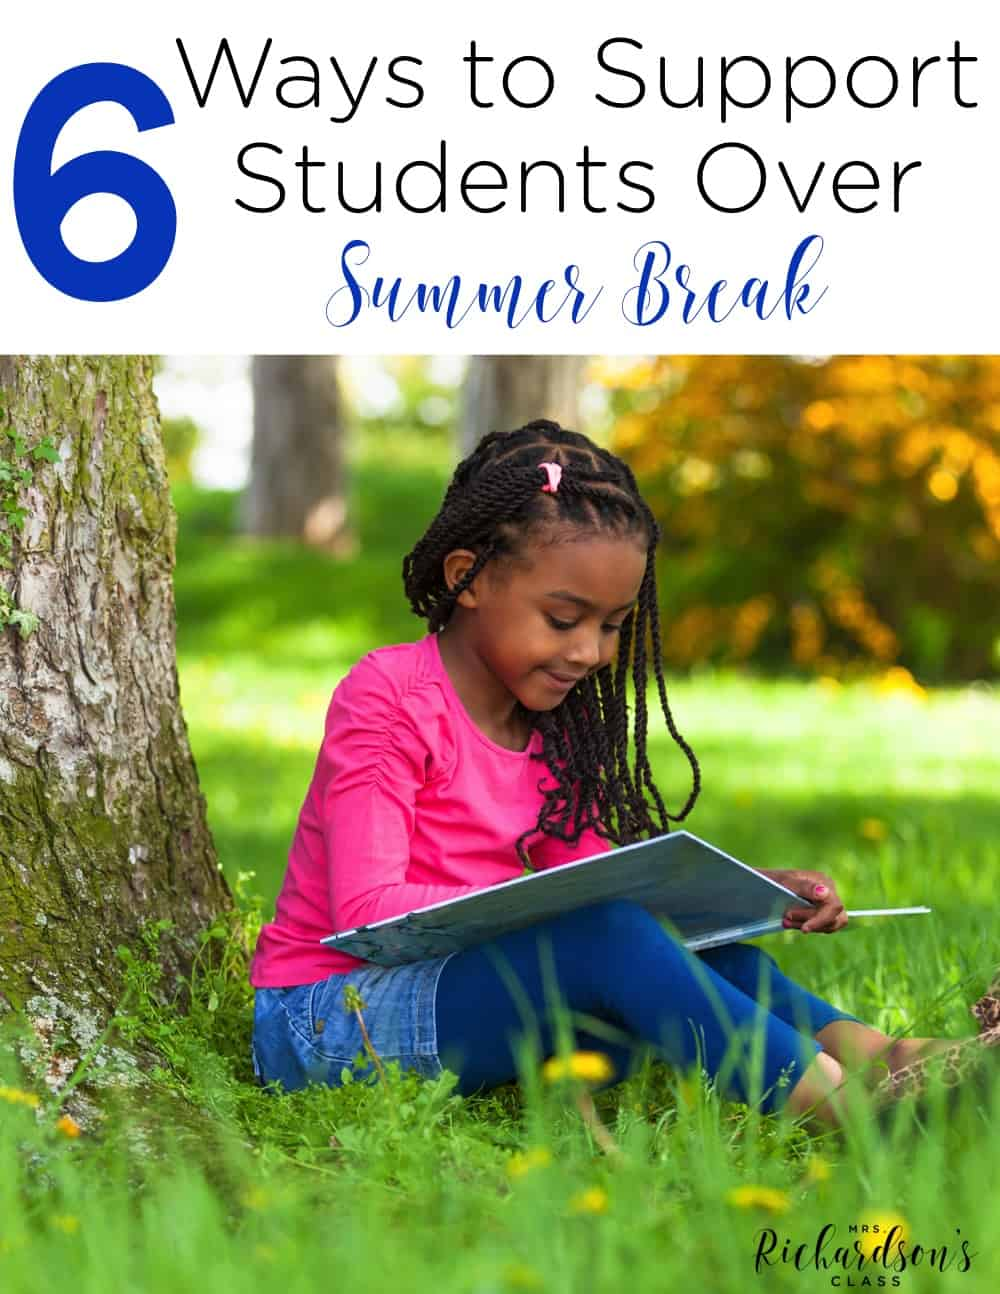 Use these 6 ways to support students over summer break! Many times parents and students want to continue learning, but they just need a little direction! Make learning fun and easy for them to implement with these 6 ways to support them over summer break!